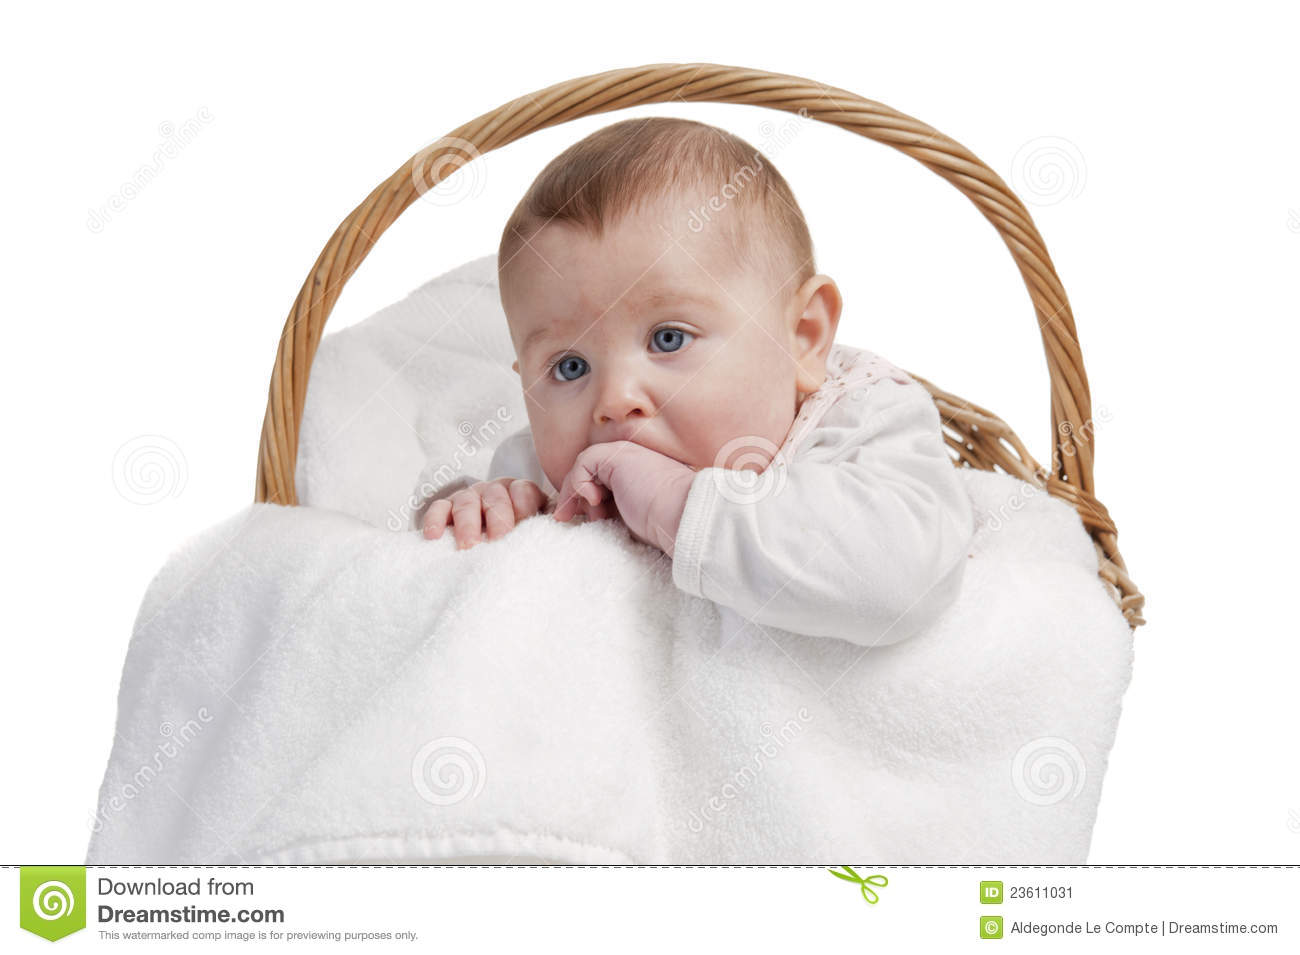 Baby Laundry Bin Baby In Laundry Basket Stock Image Image 23611031